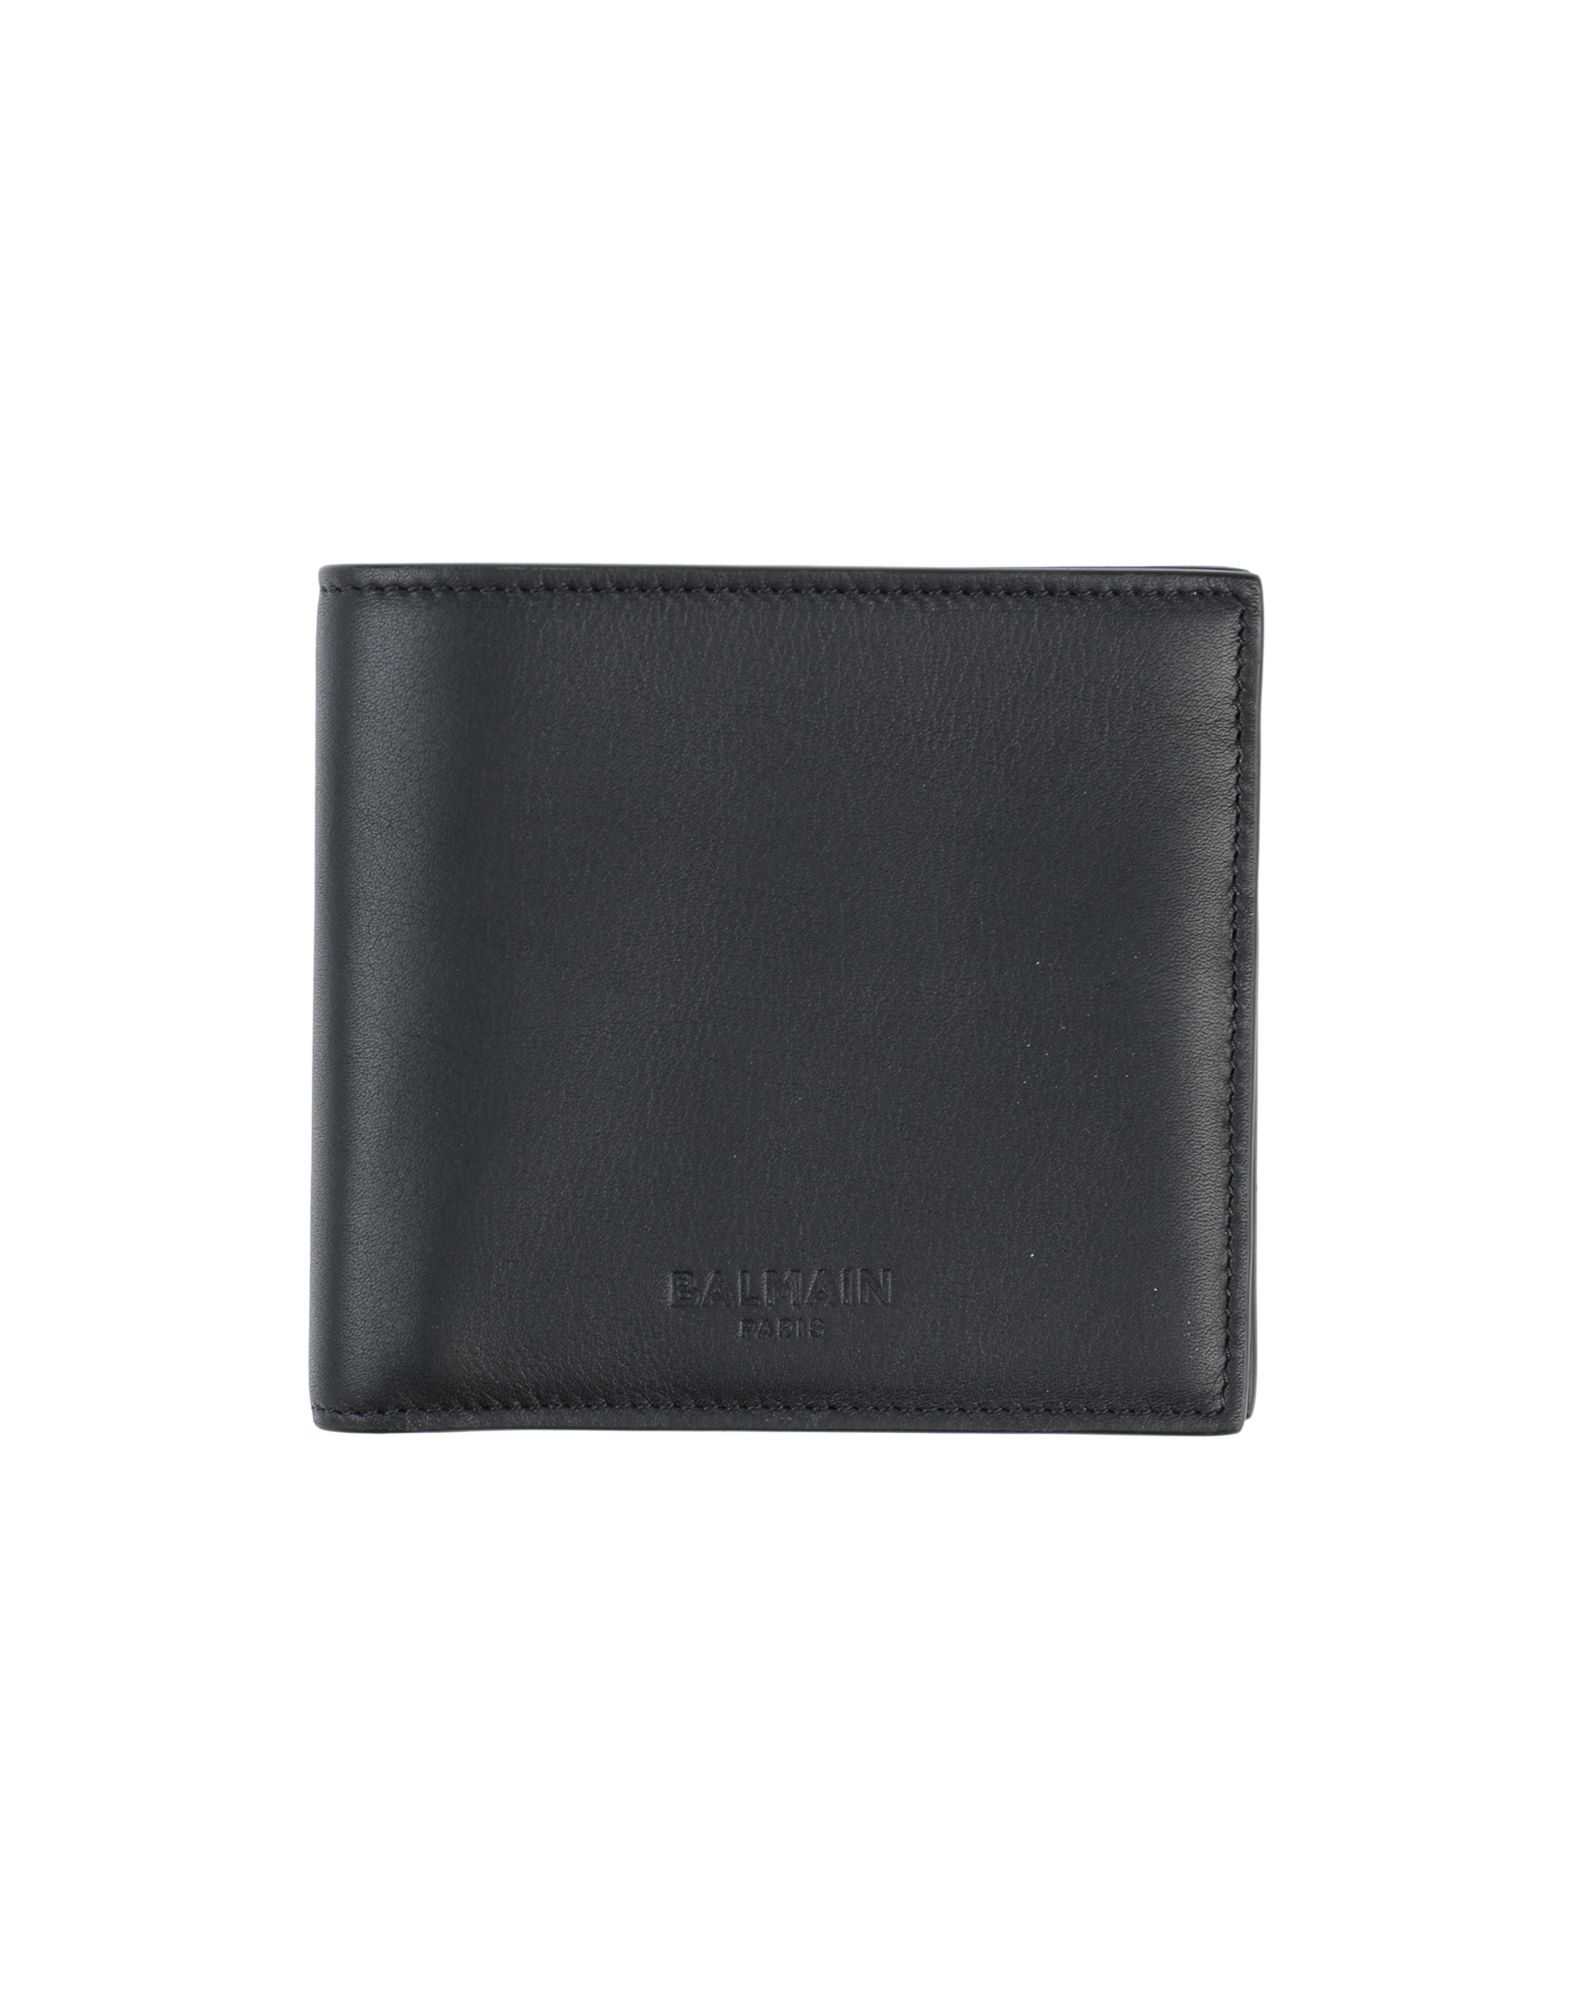 BALMAIN Wallets. leather, logo, solid color, leather lining, internal card slots, internal pocket, contains non-textile parts of animal origin. Soft Leather